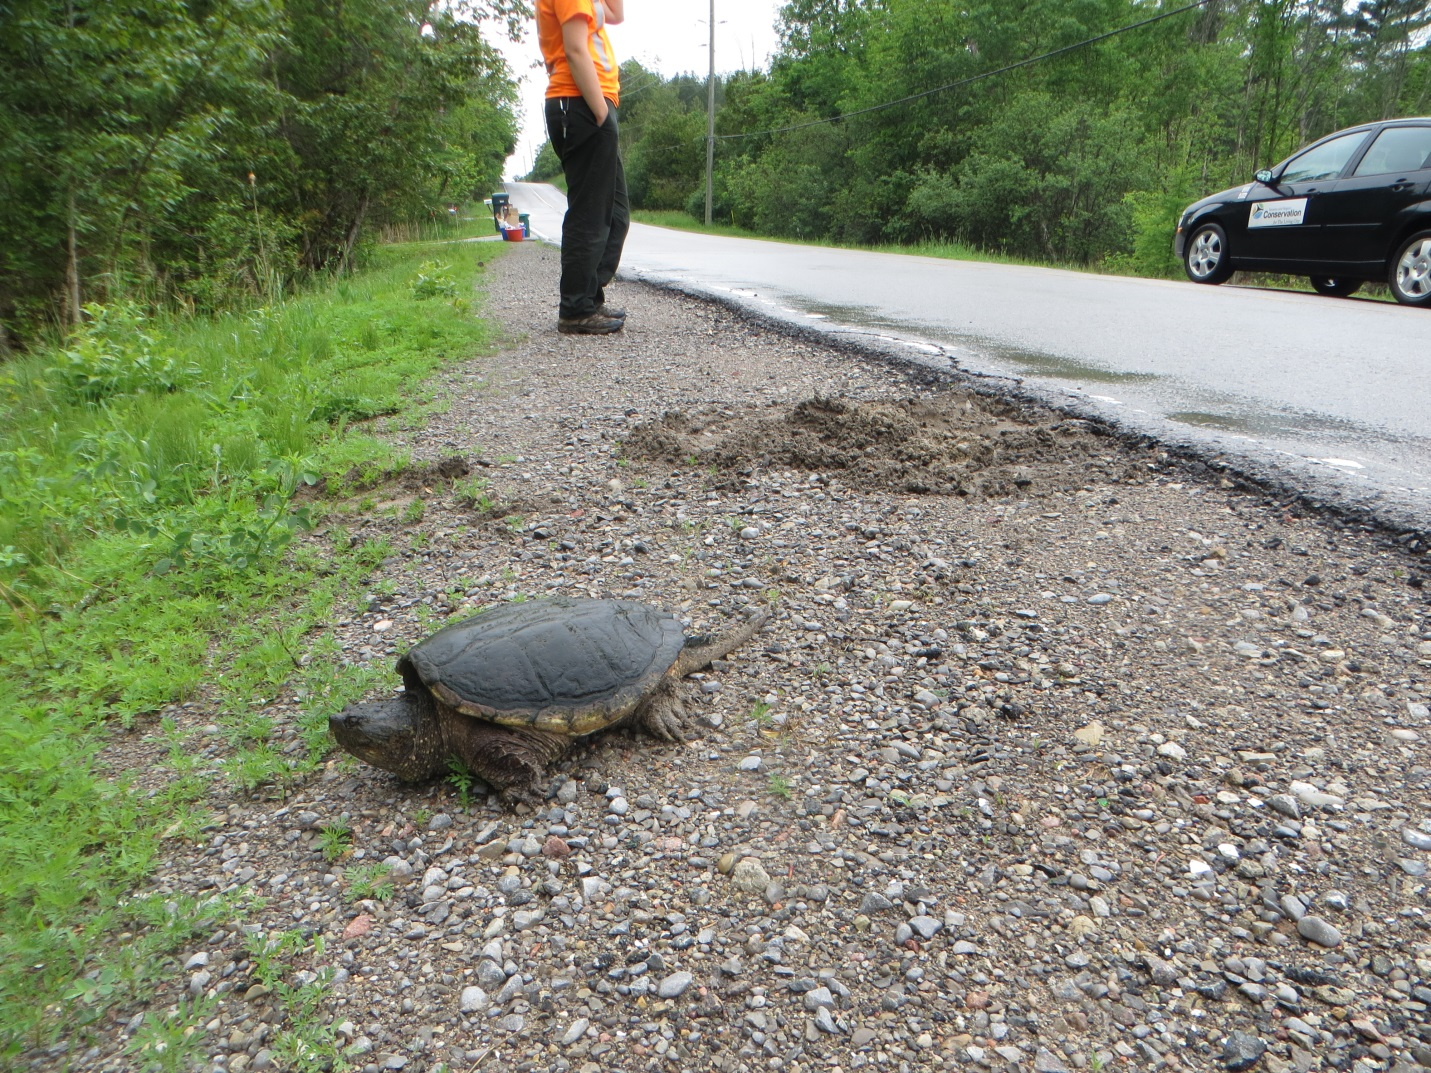 snapping turtle is an example of local flora and fauna in TRCA watersheds